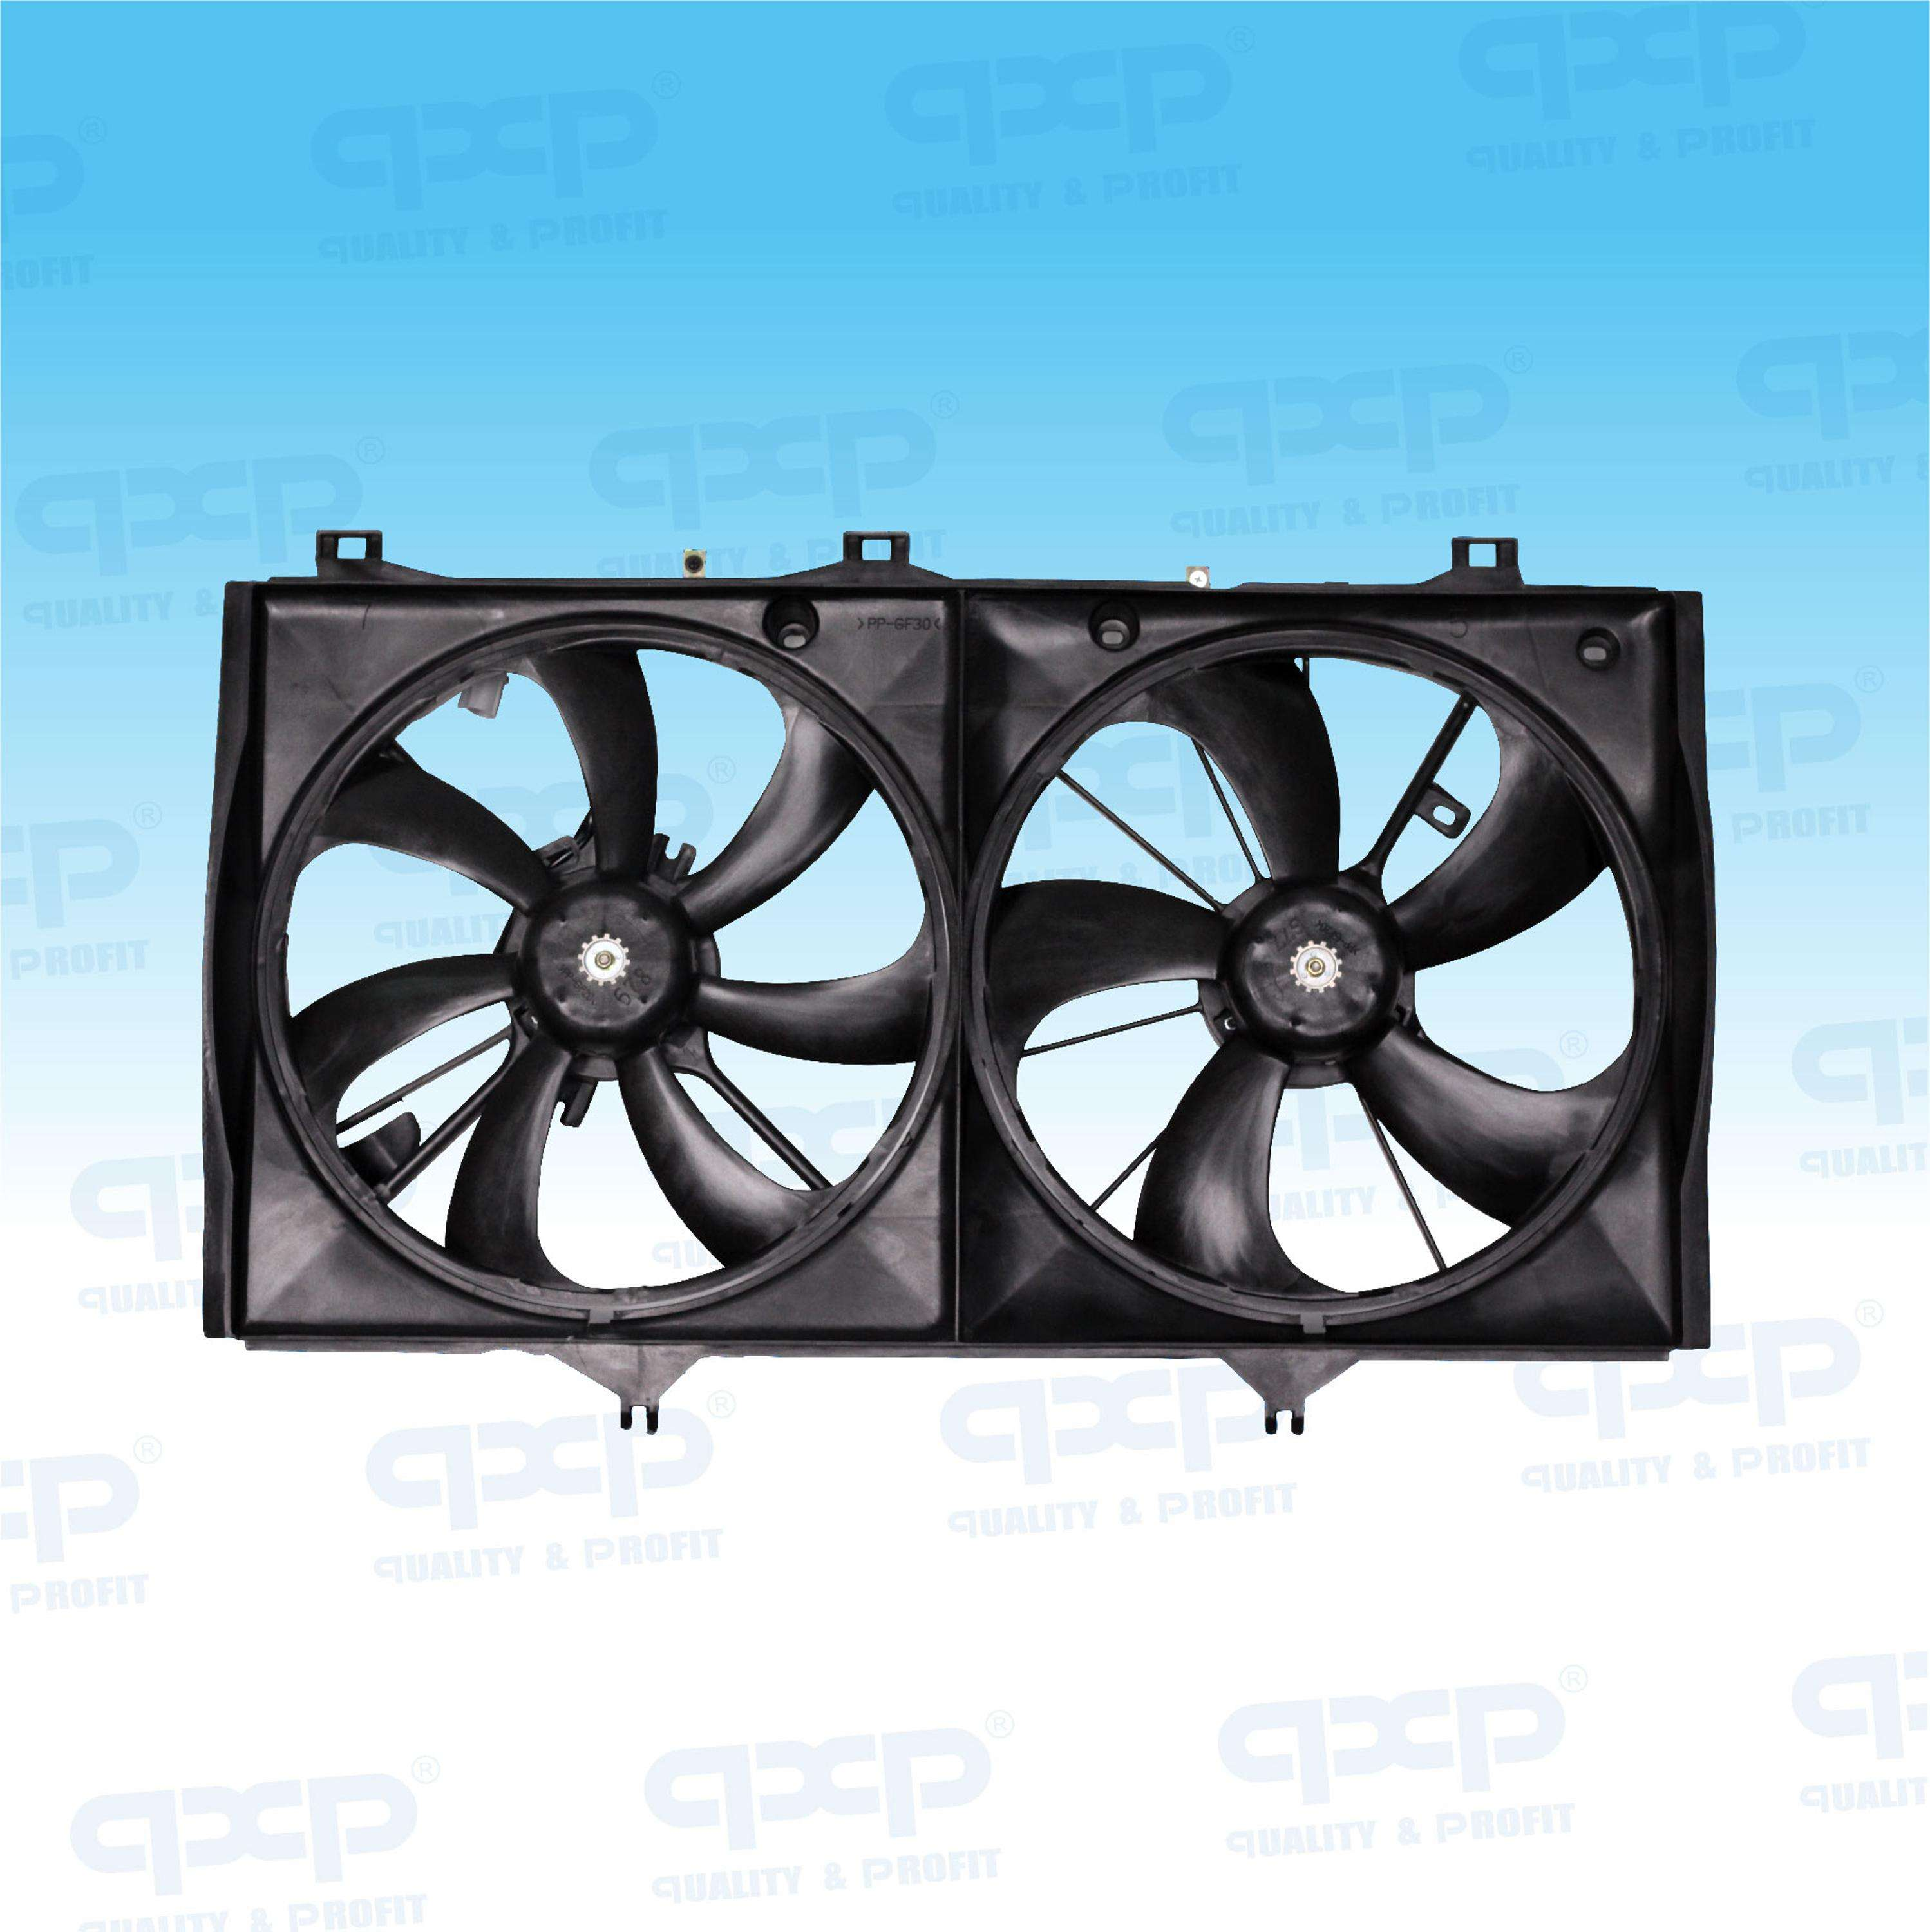 High quality CAMRY DC axial fan, cooling fan